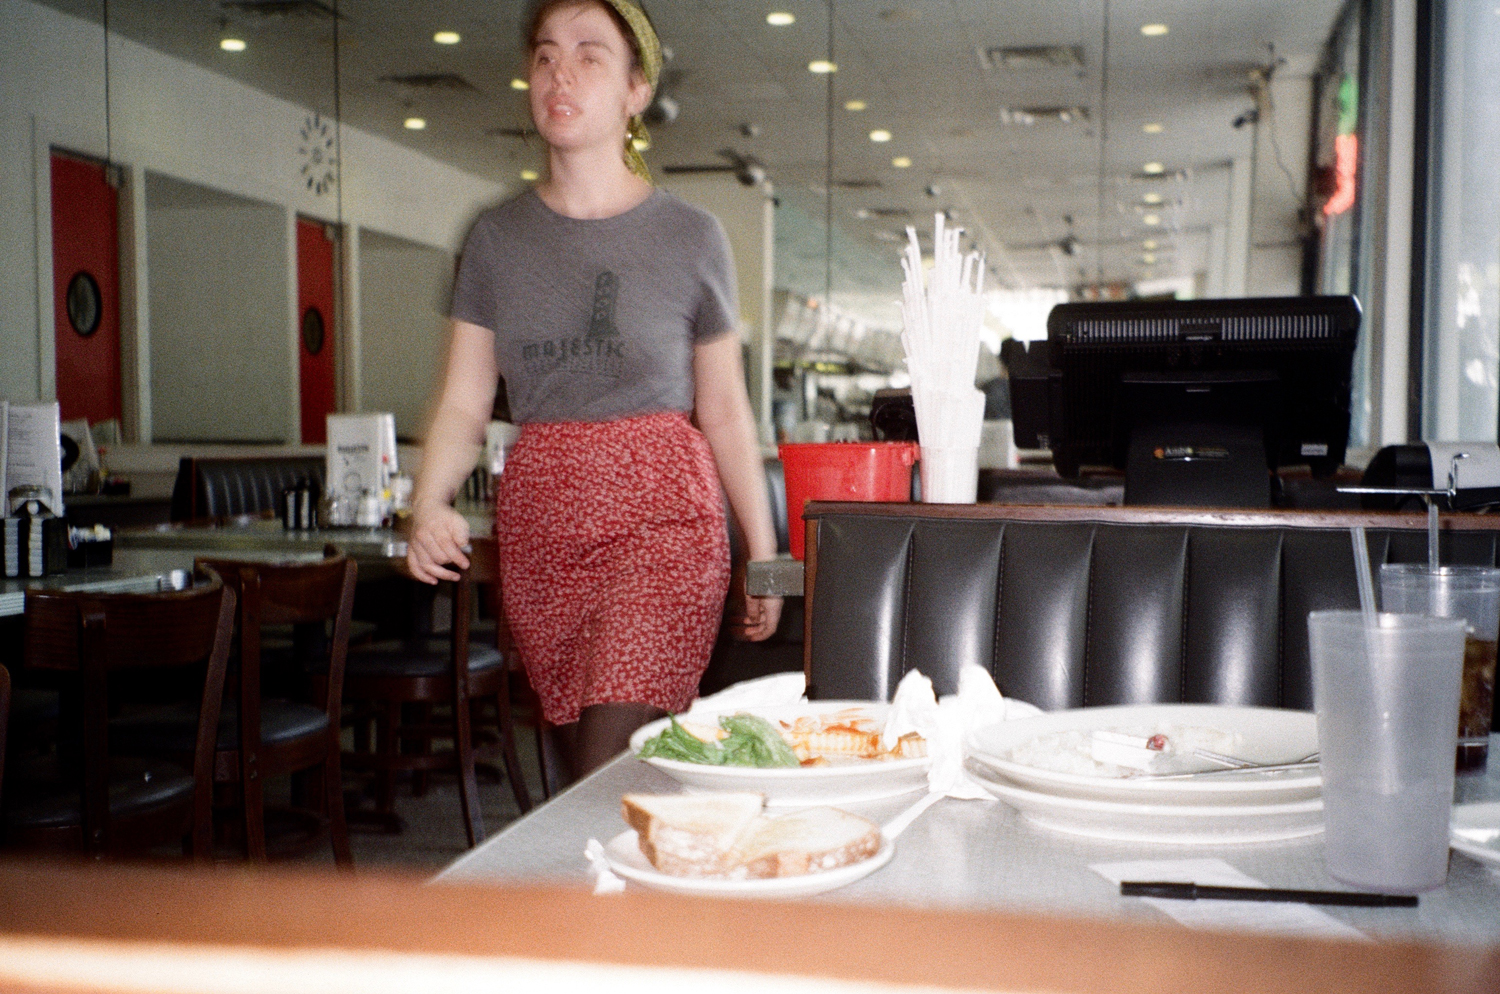 I go to a 24-hour diner to do work one day and keep returning like I'm a local; developing temporary habits feels semi-luxurious, like slipping into a new, silky skin. -